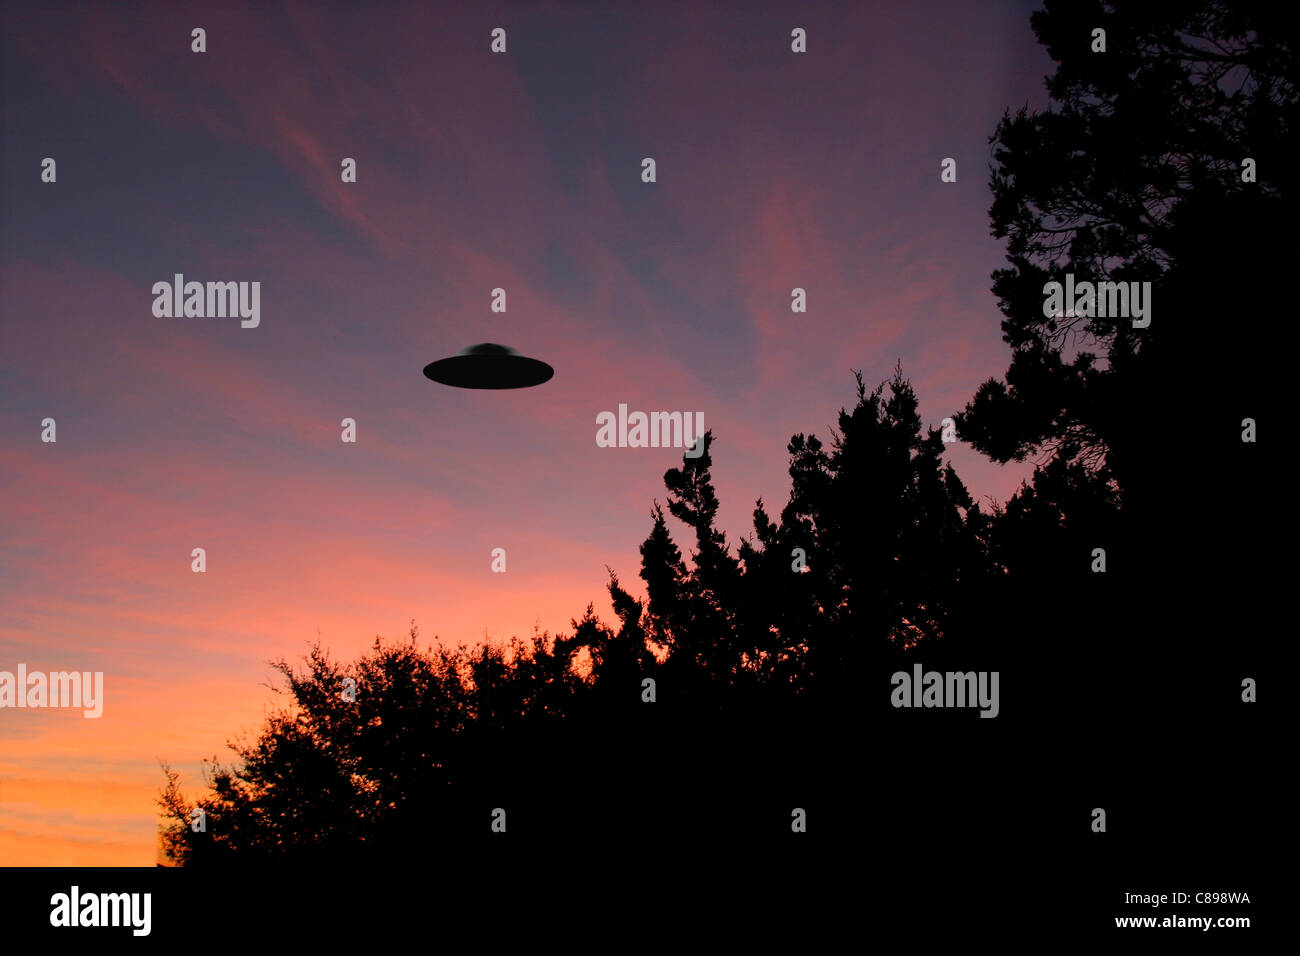 Sinister looking UFO at sunrise - Stock Image